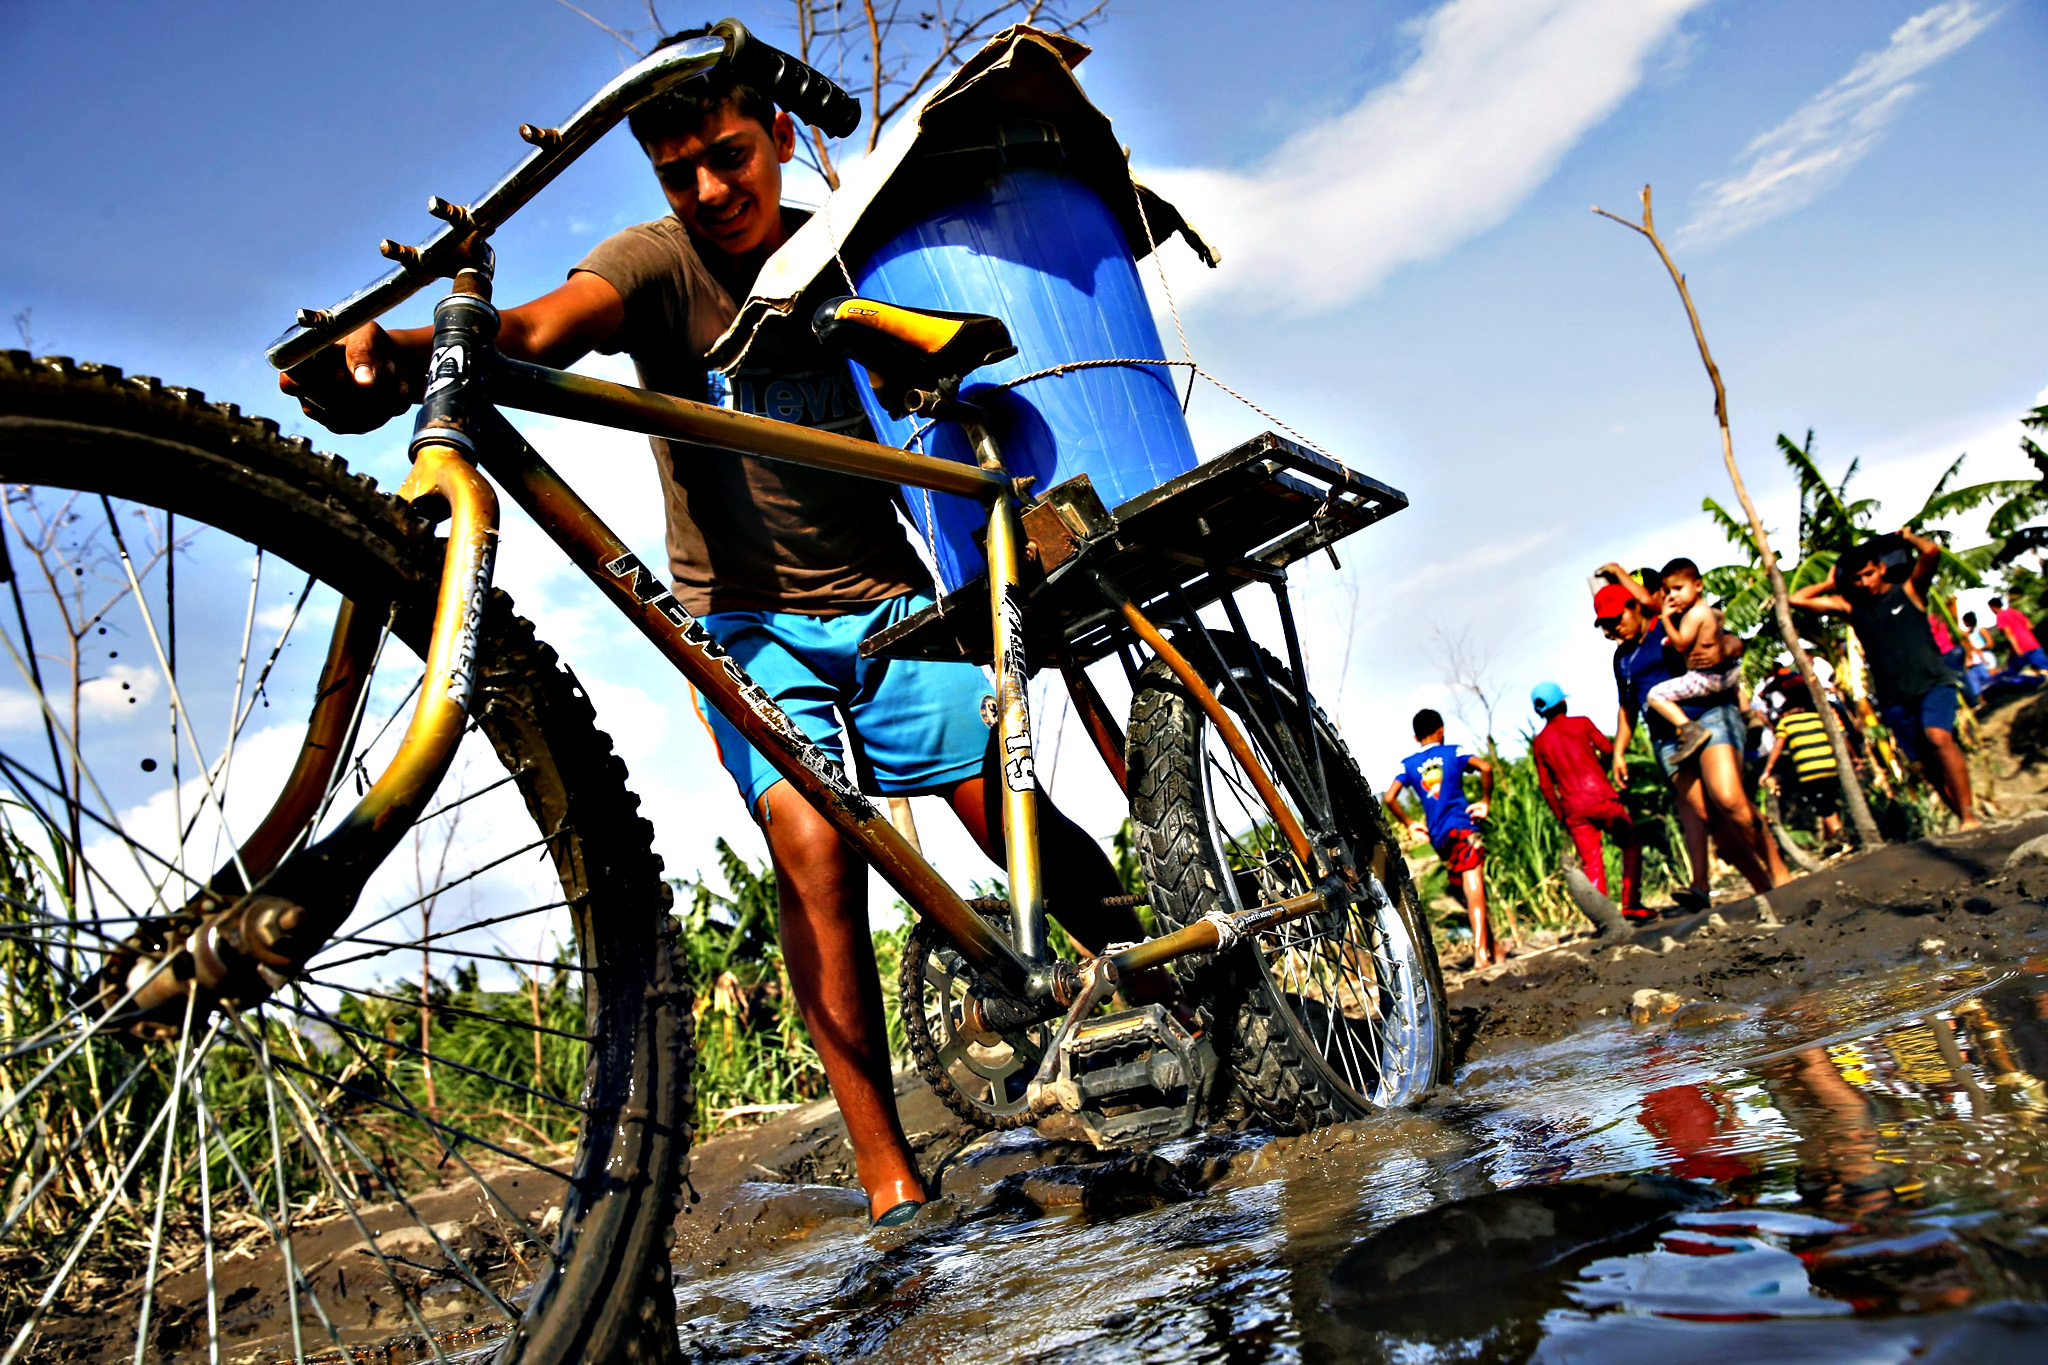 A boy pushes his bicycle loaded with a bucket across a dirt track next to people carrying their belongings, across to Colombia through the Tachira river at San Antonio in Tachira state, Venezuela...A boy pushes his bicycle loaded with a bucket across a dirt track next to people carrying their belongings, across to Colombia through the Tachira river at San Antonio in Tachira state, Venezuela